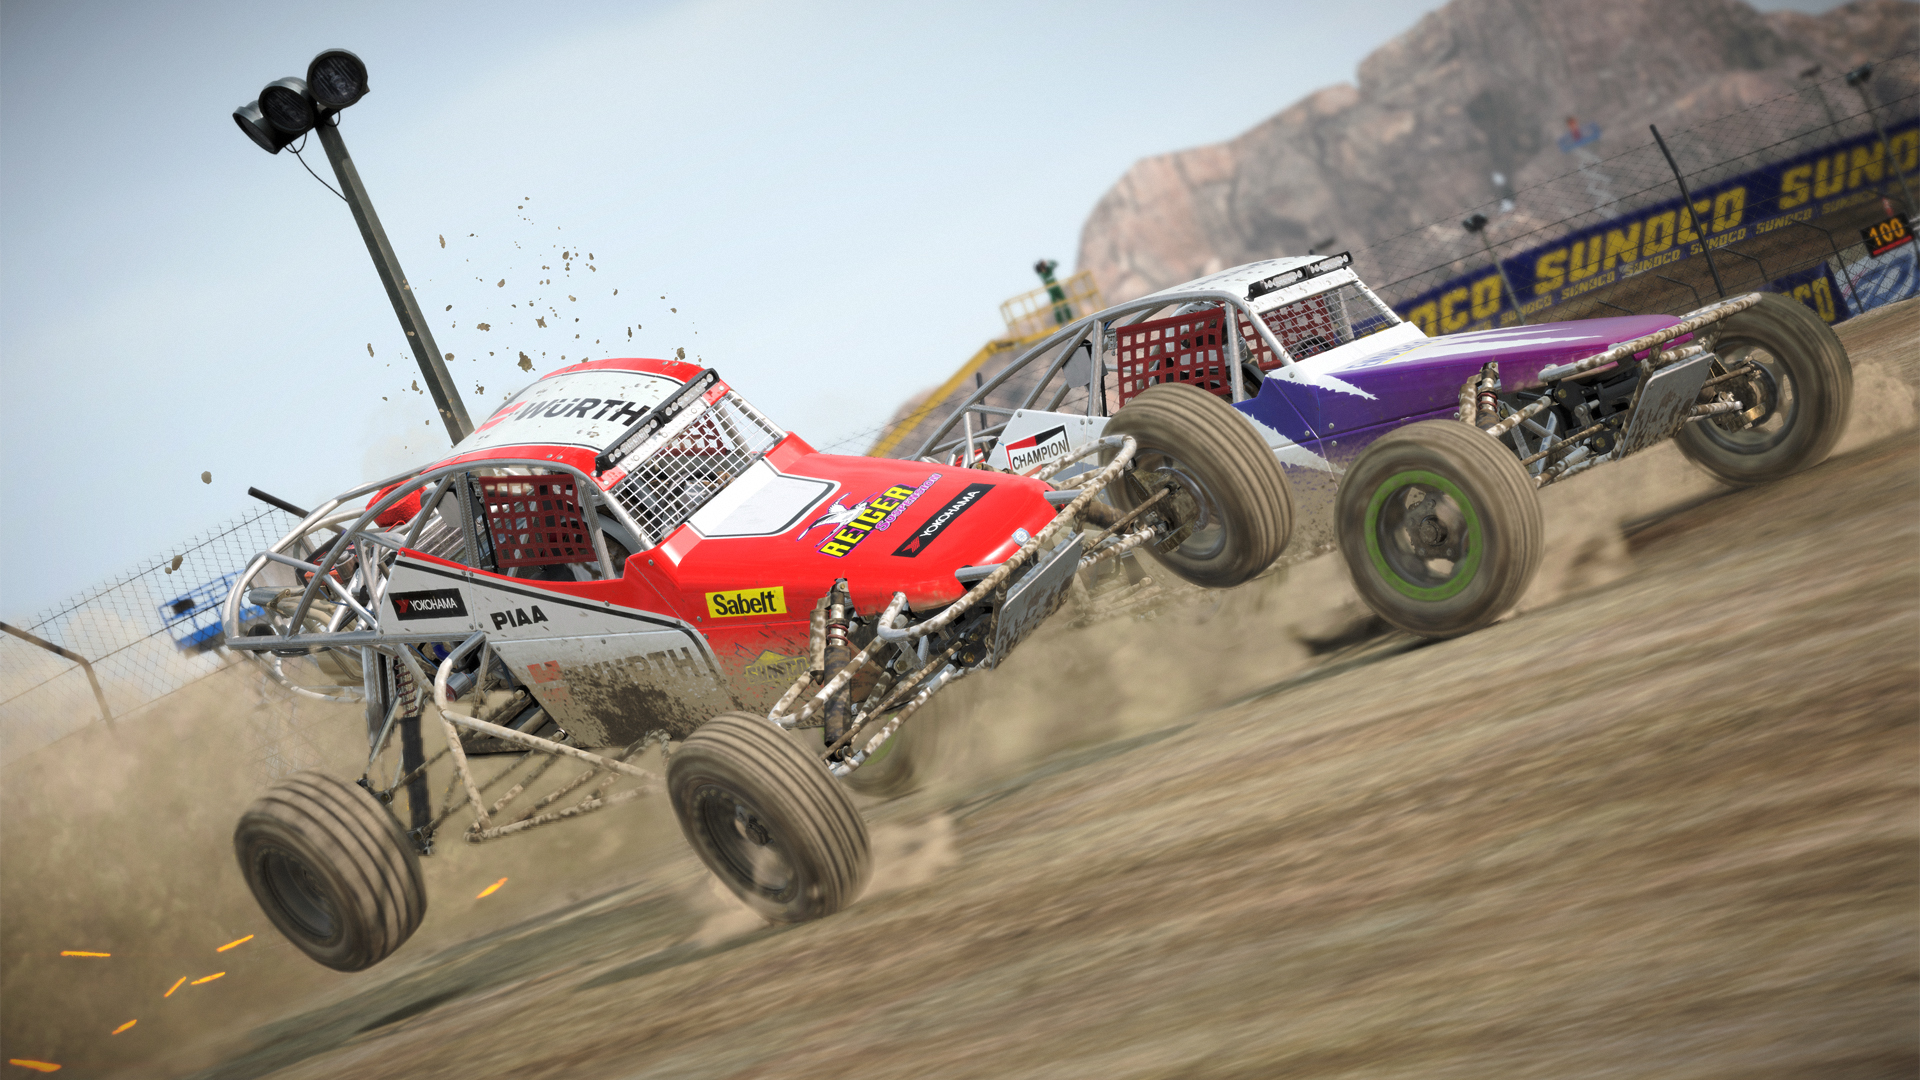 download dirt 4 include all dlc and latest update deluxe edition repack by corepack fitgirl singlelink iso rar part kumpulbagi kutucugum partagora